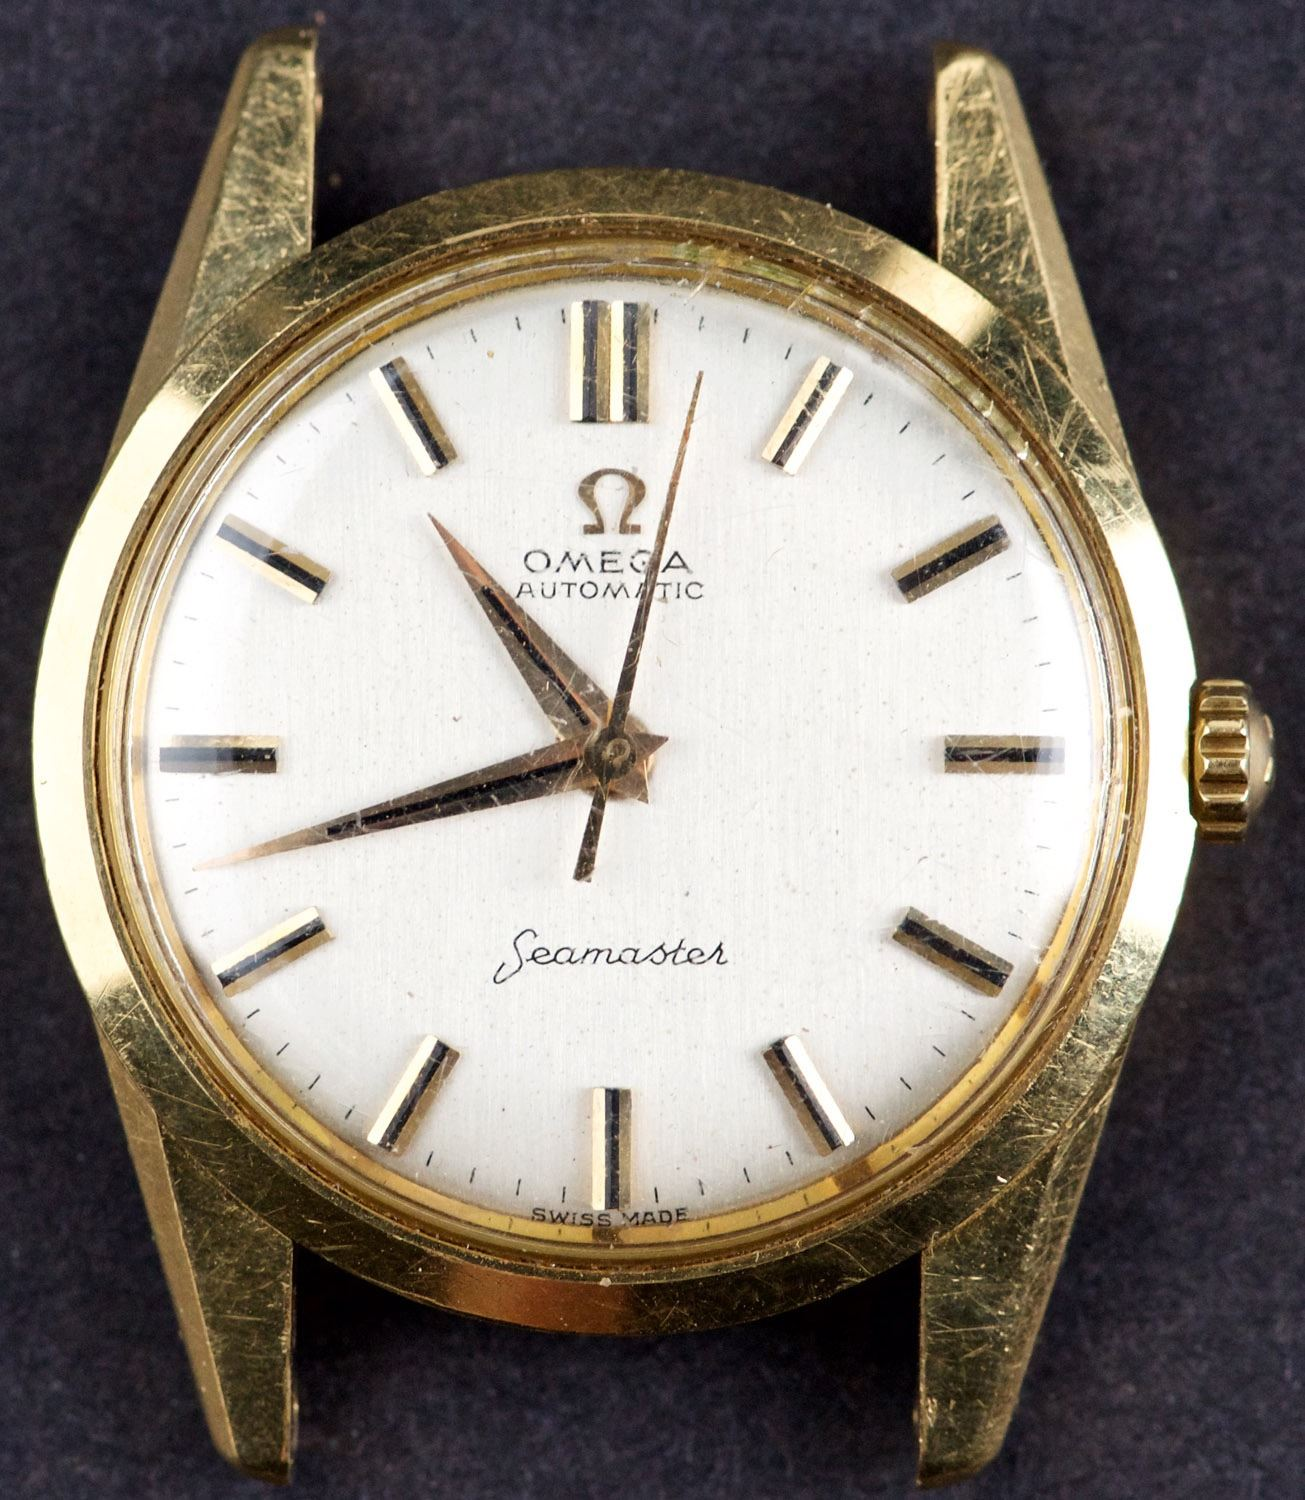 120a91a443 Image 1 : Vintage 18 Kt Gold Omega SEAMASTER Automatic Watch ...